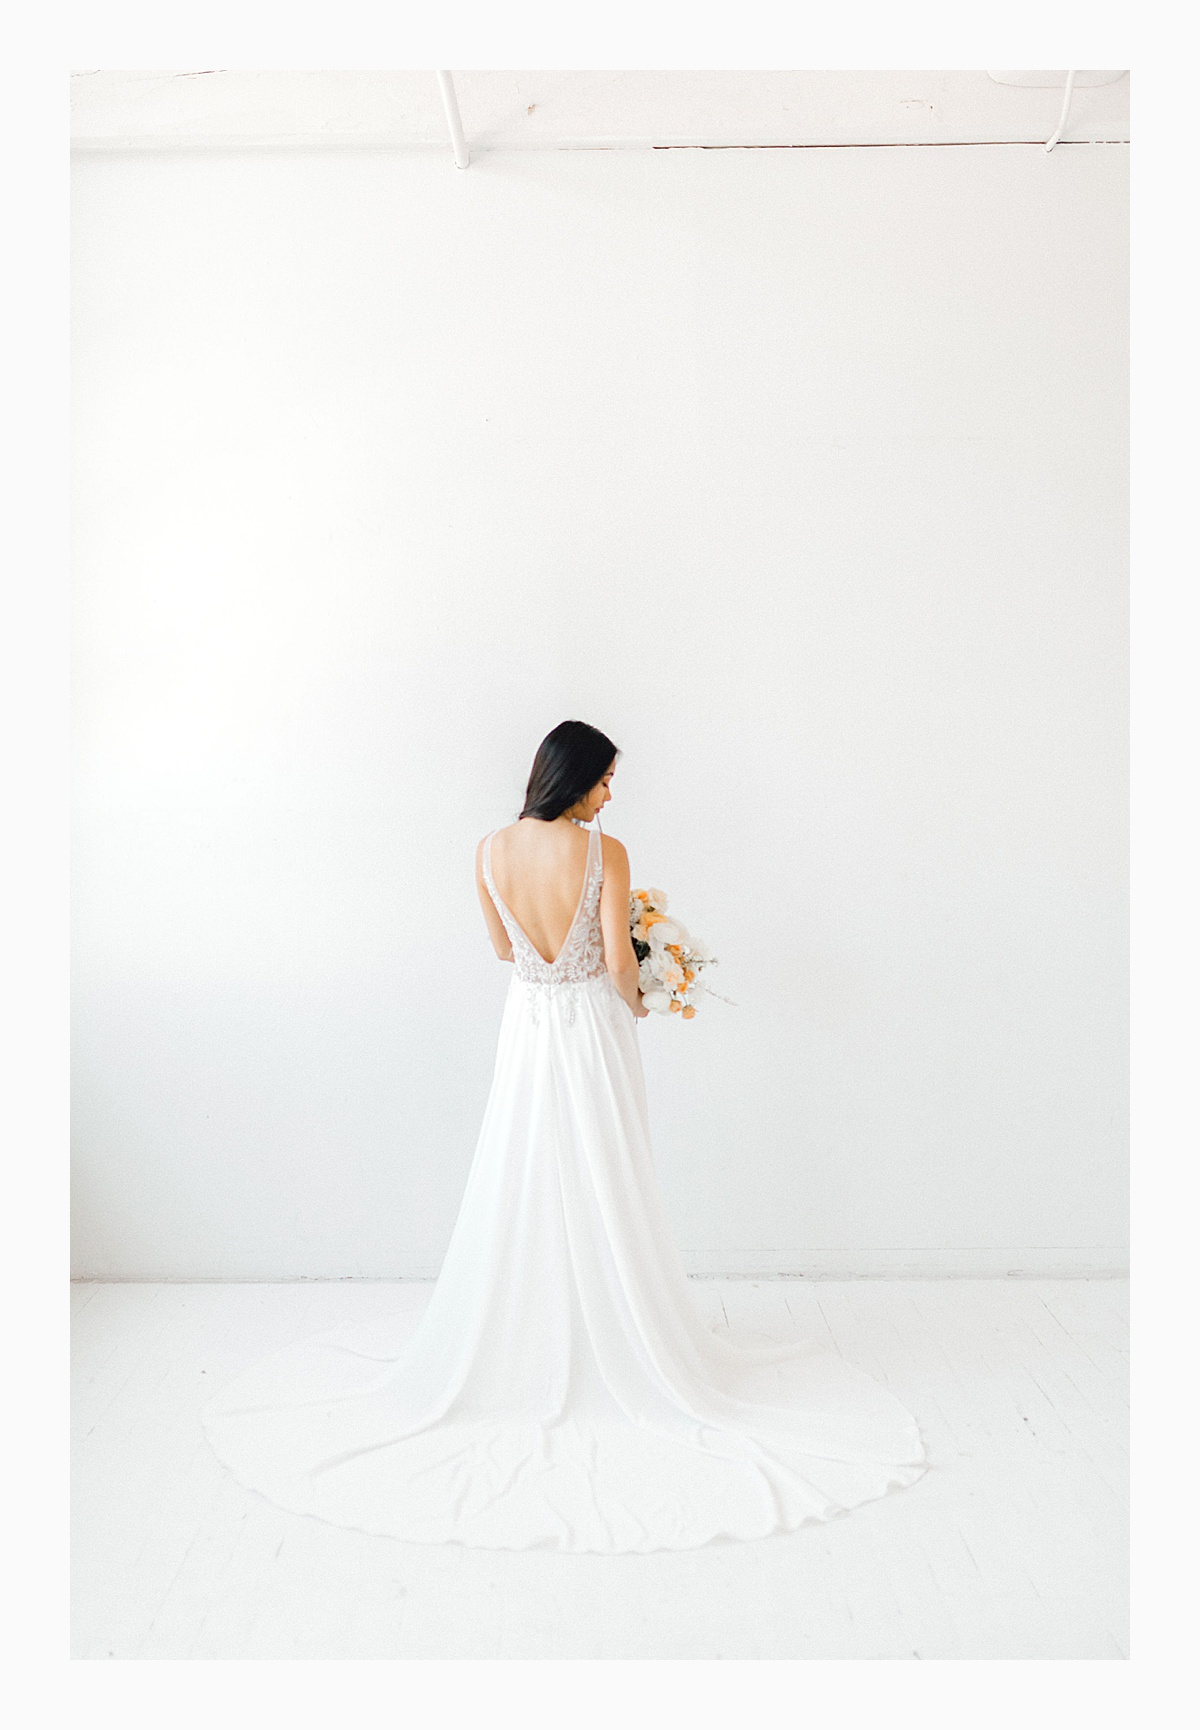 The Bemis Building in downtown Seattle is one of my favorite places to use for photo shoots!  This styled bridal shoot with touches of peach and white was dreamy.  #emmarosecompany #kindredpresets #seattlebride_0023.jpg